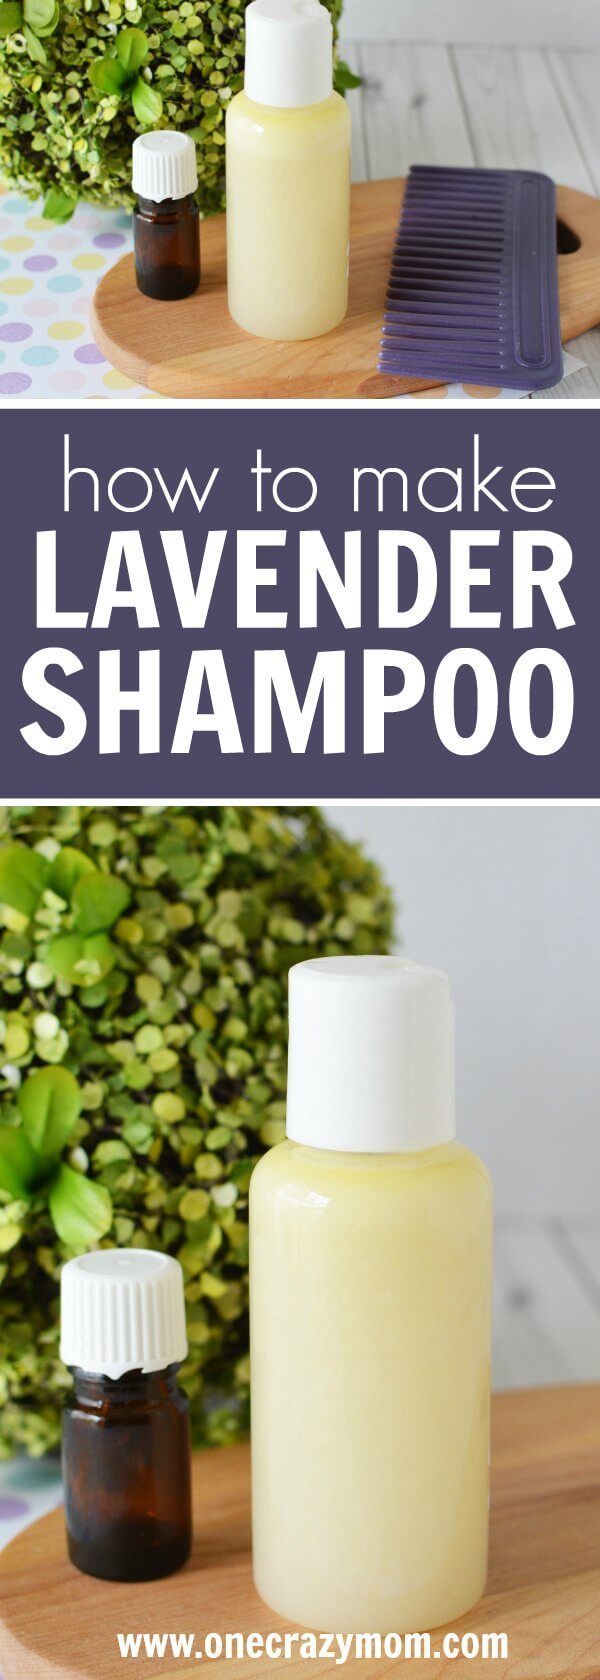 Lavender Shampoo - How to make shampoo at home